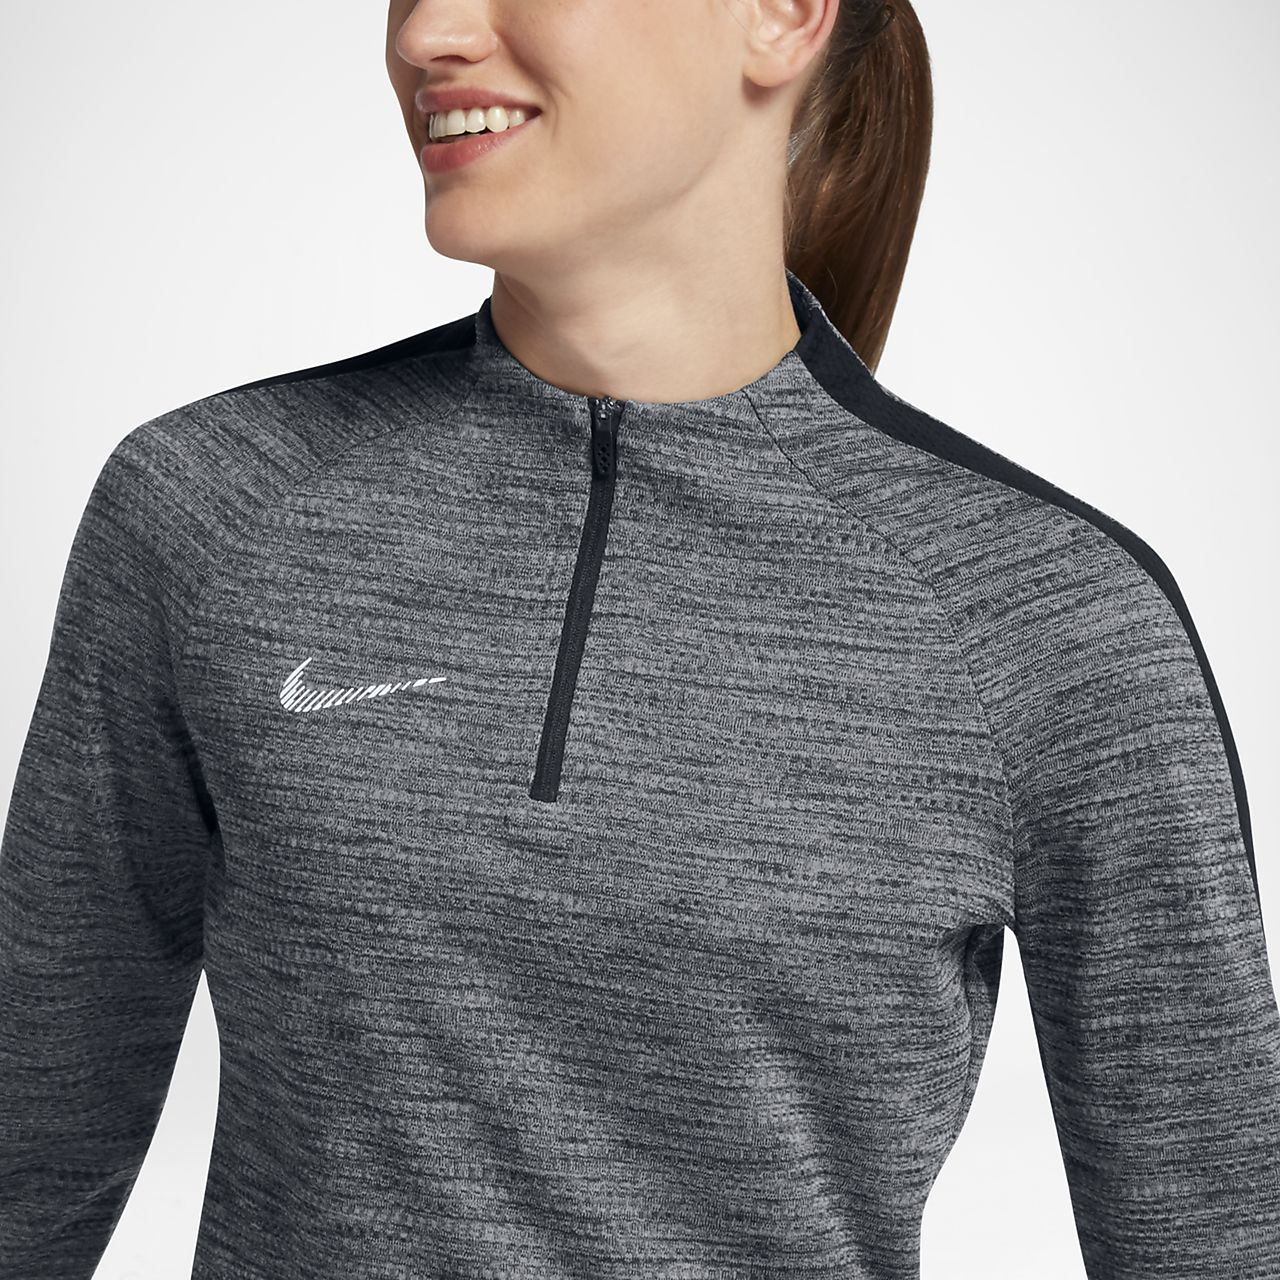 ... Nike Dry Squad Drill Women's Football Top